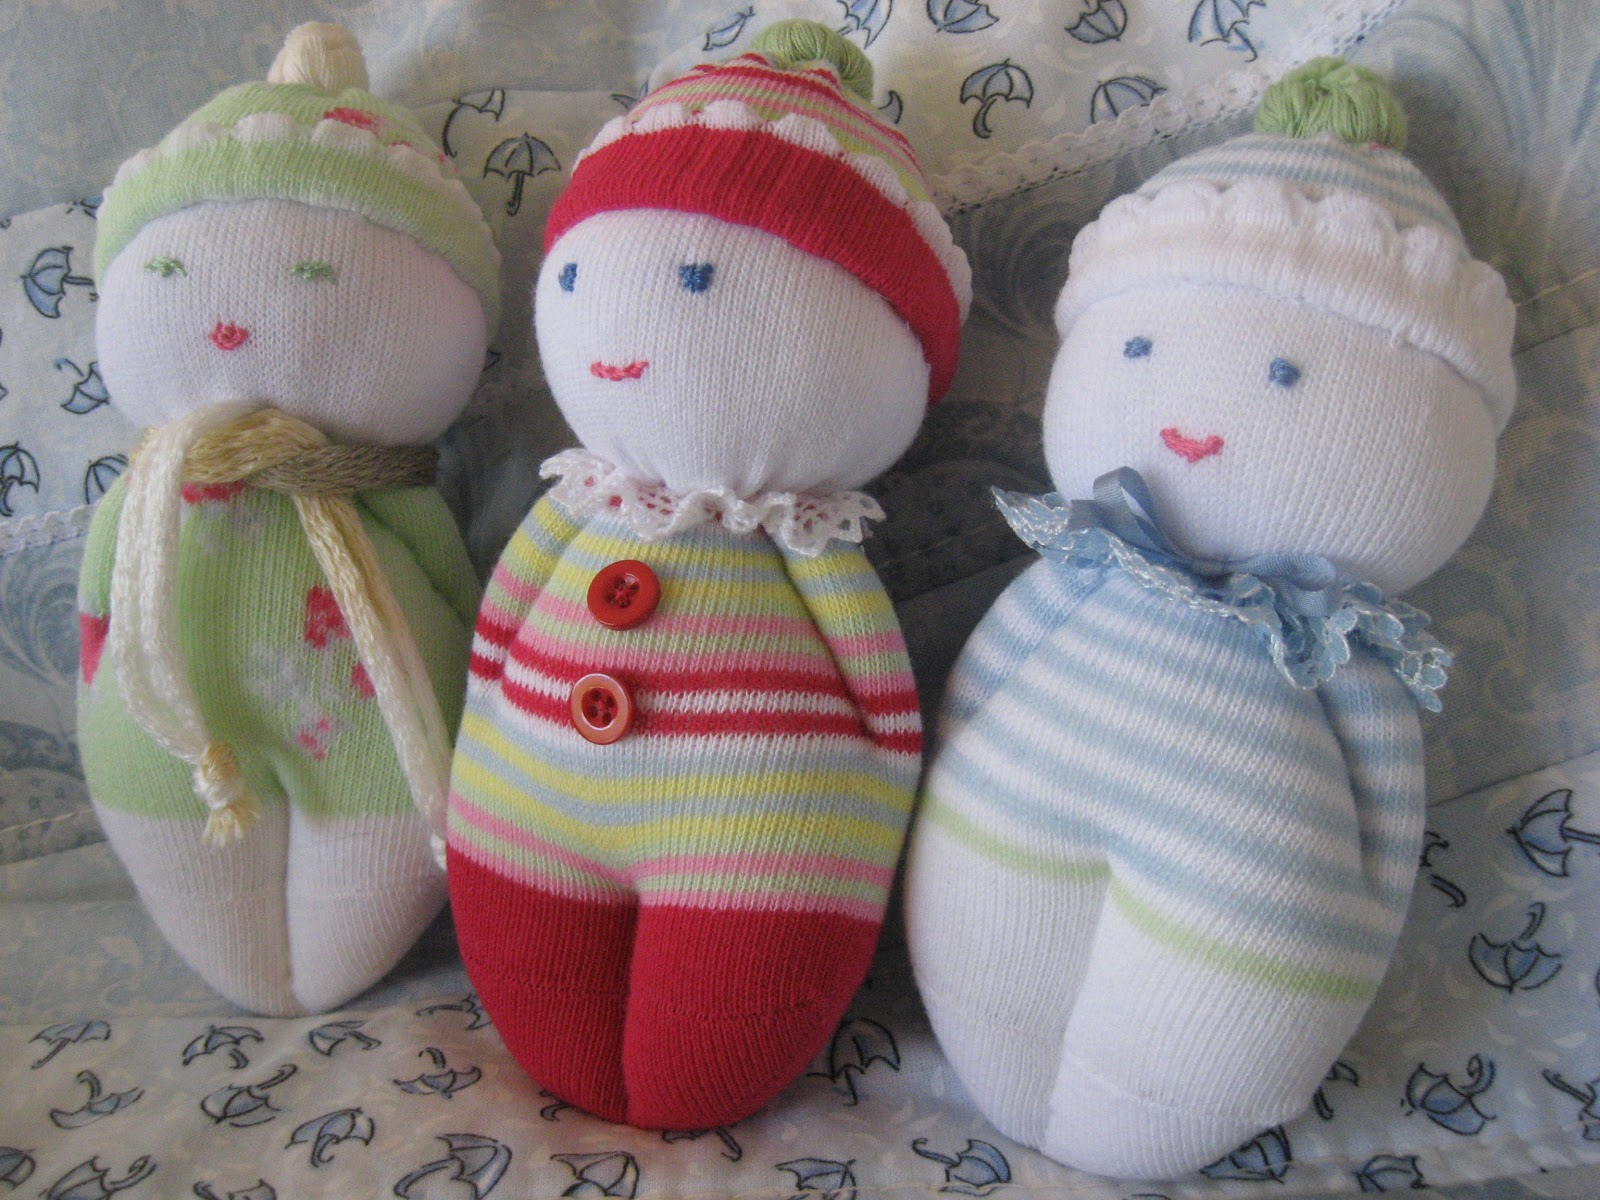 Gee s Projects Sock Babies